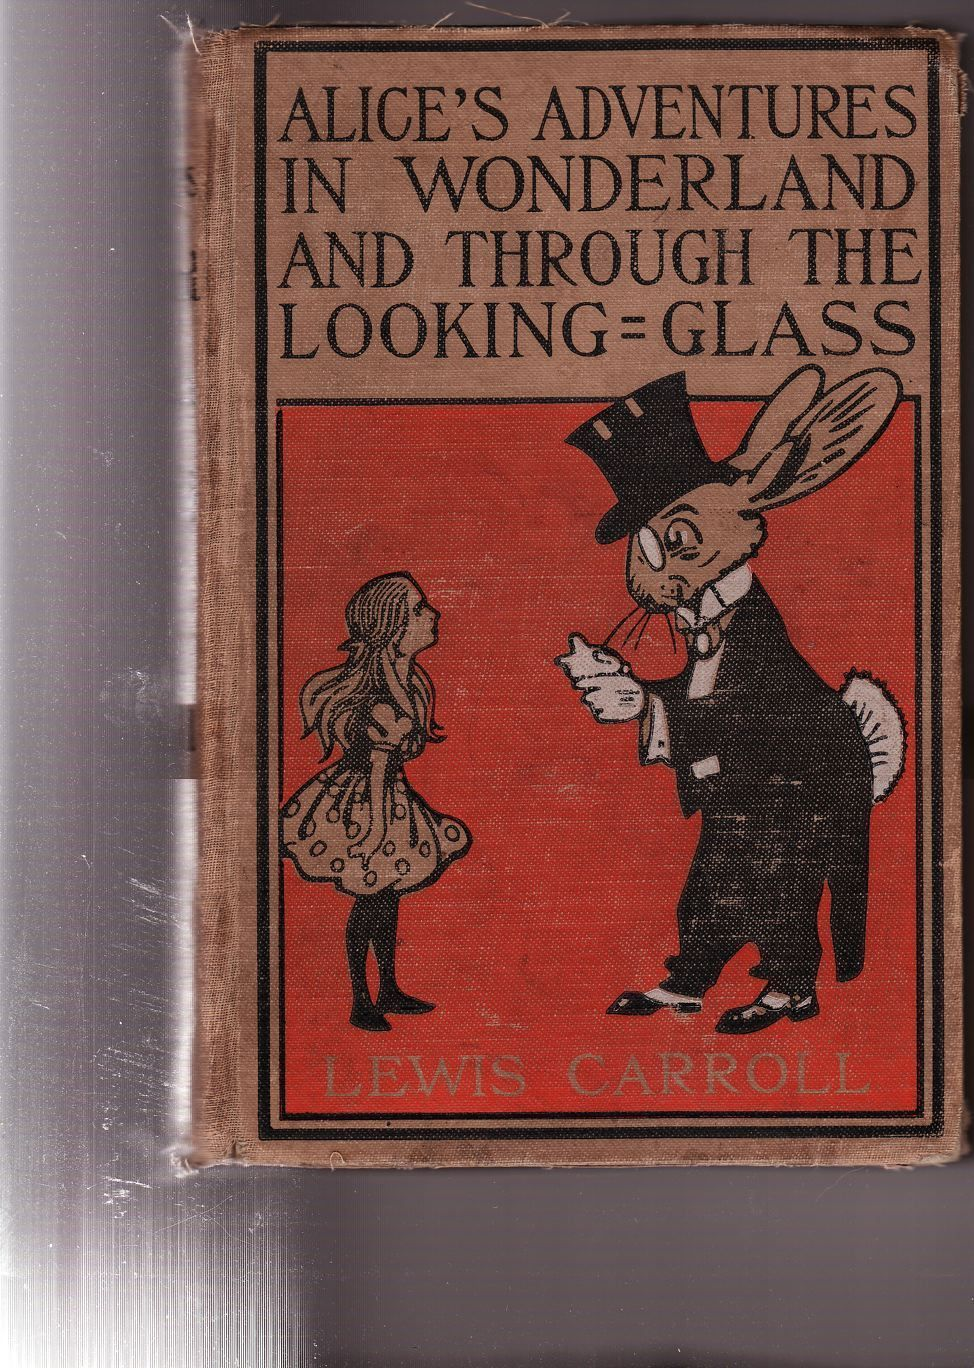 Differences Between Alice's Adventures in Wonderland and Through the Looking Glass